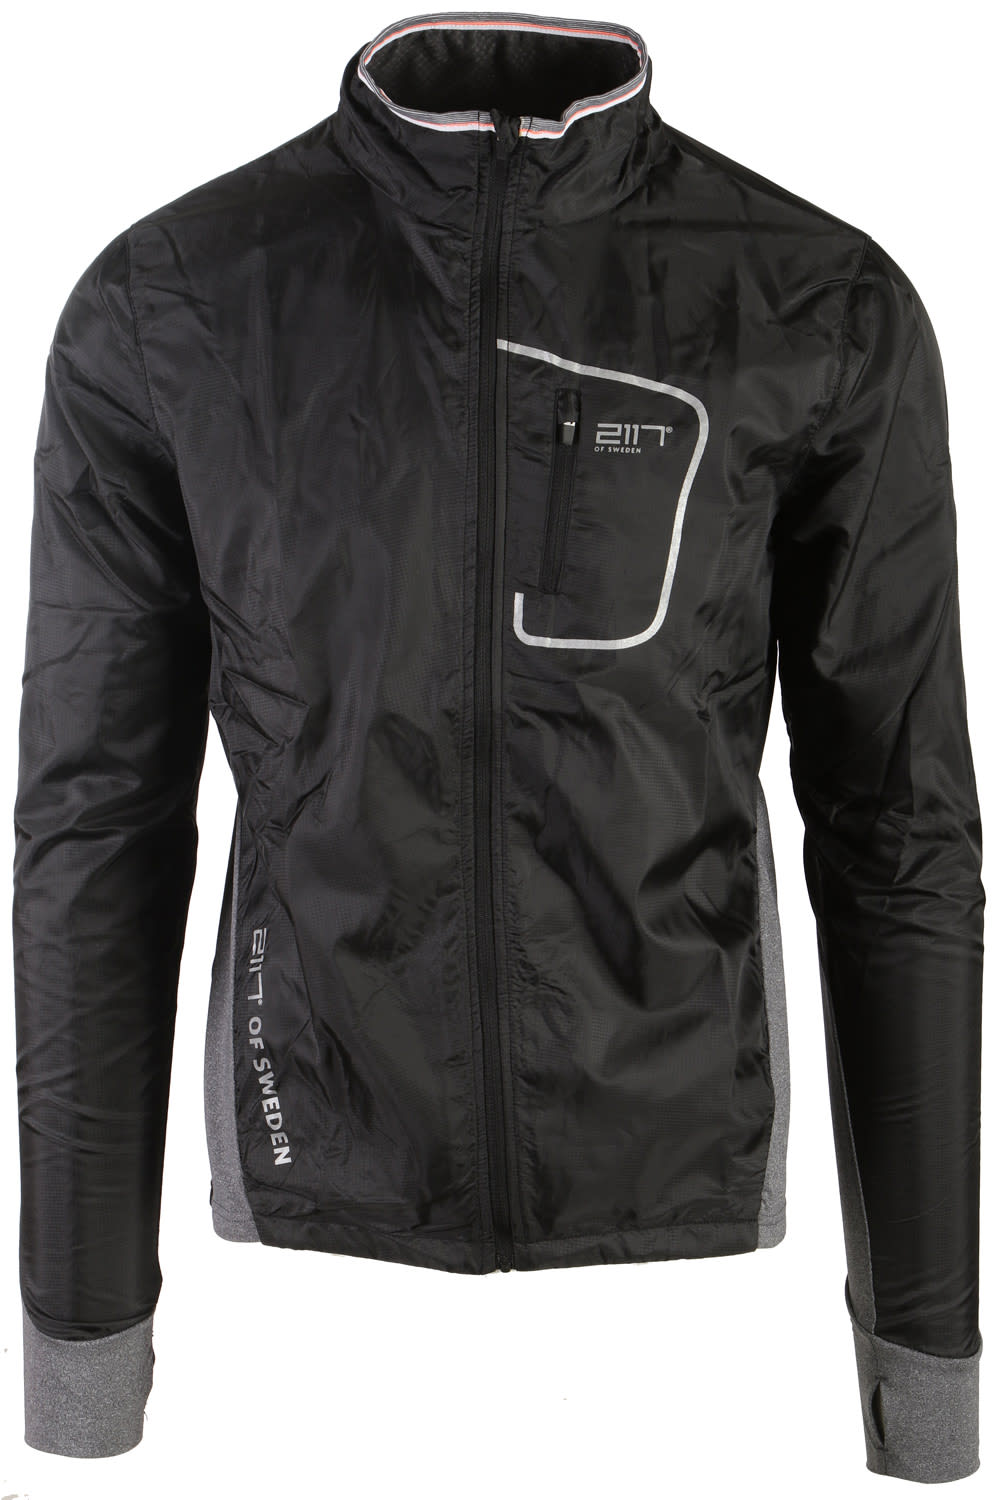 Image of 2117 of Sweden Svedje Eco Multisport XC Ski Jacket